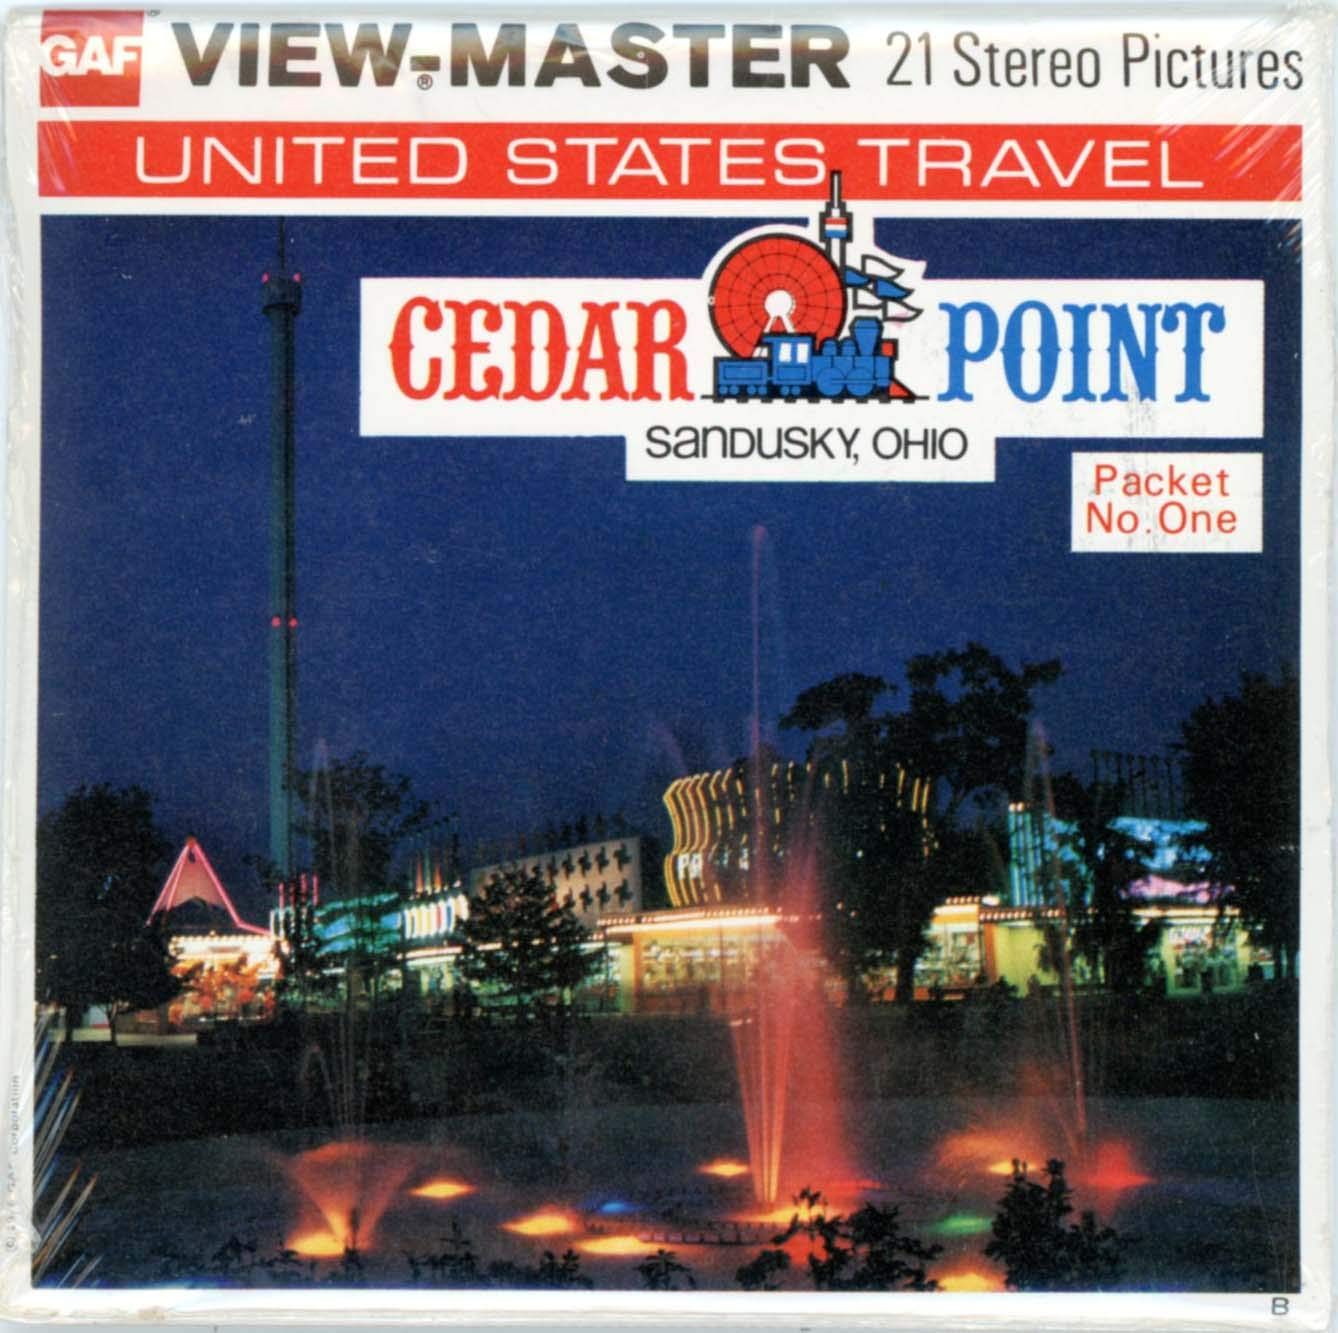 Cedar Point- Sandusky, Ohio - Classic ViewMaster - 3 Reel Set - 21 3D Images - Mint by 3Dstereo ViewMaster (Image #1)